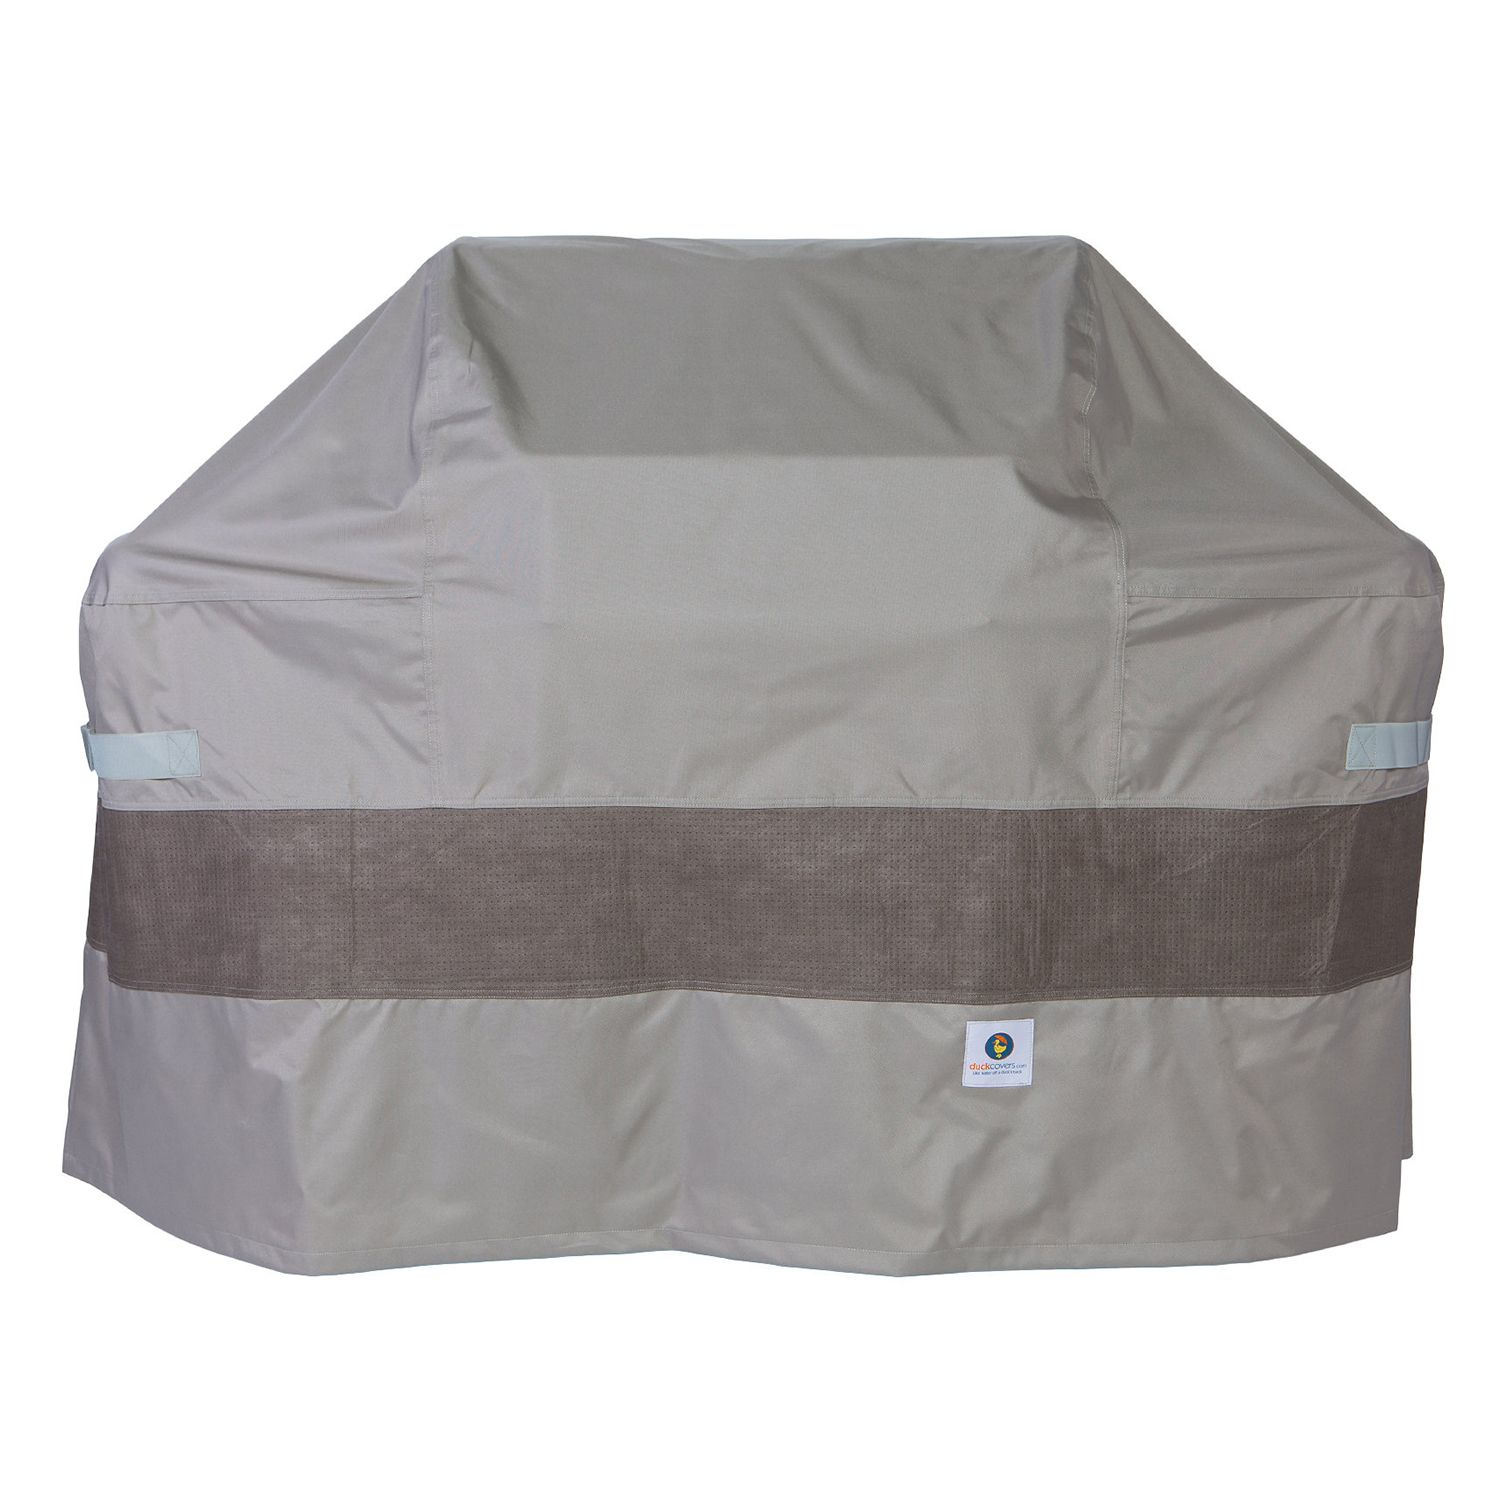 duck covers elegant 53in grill cover - Grill Covers